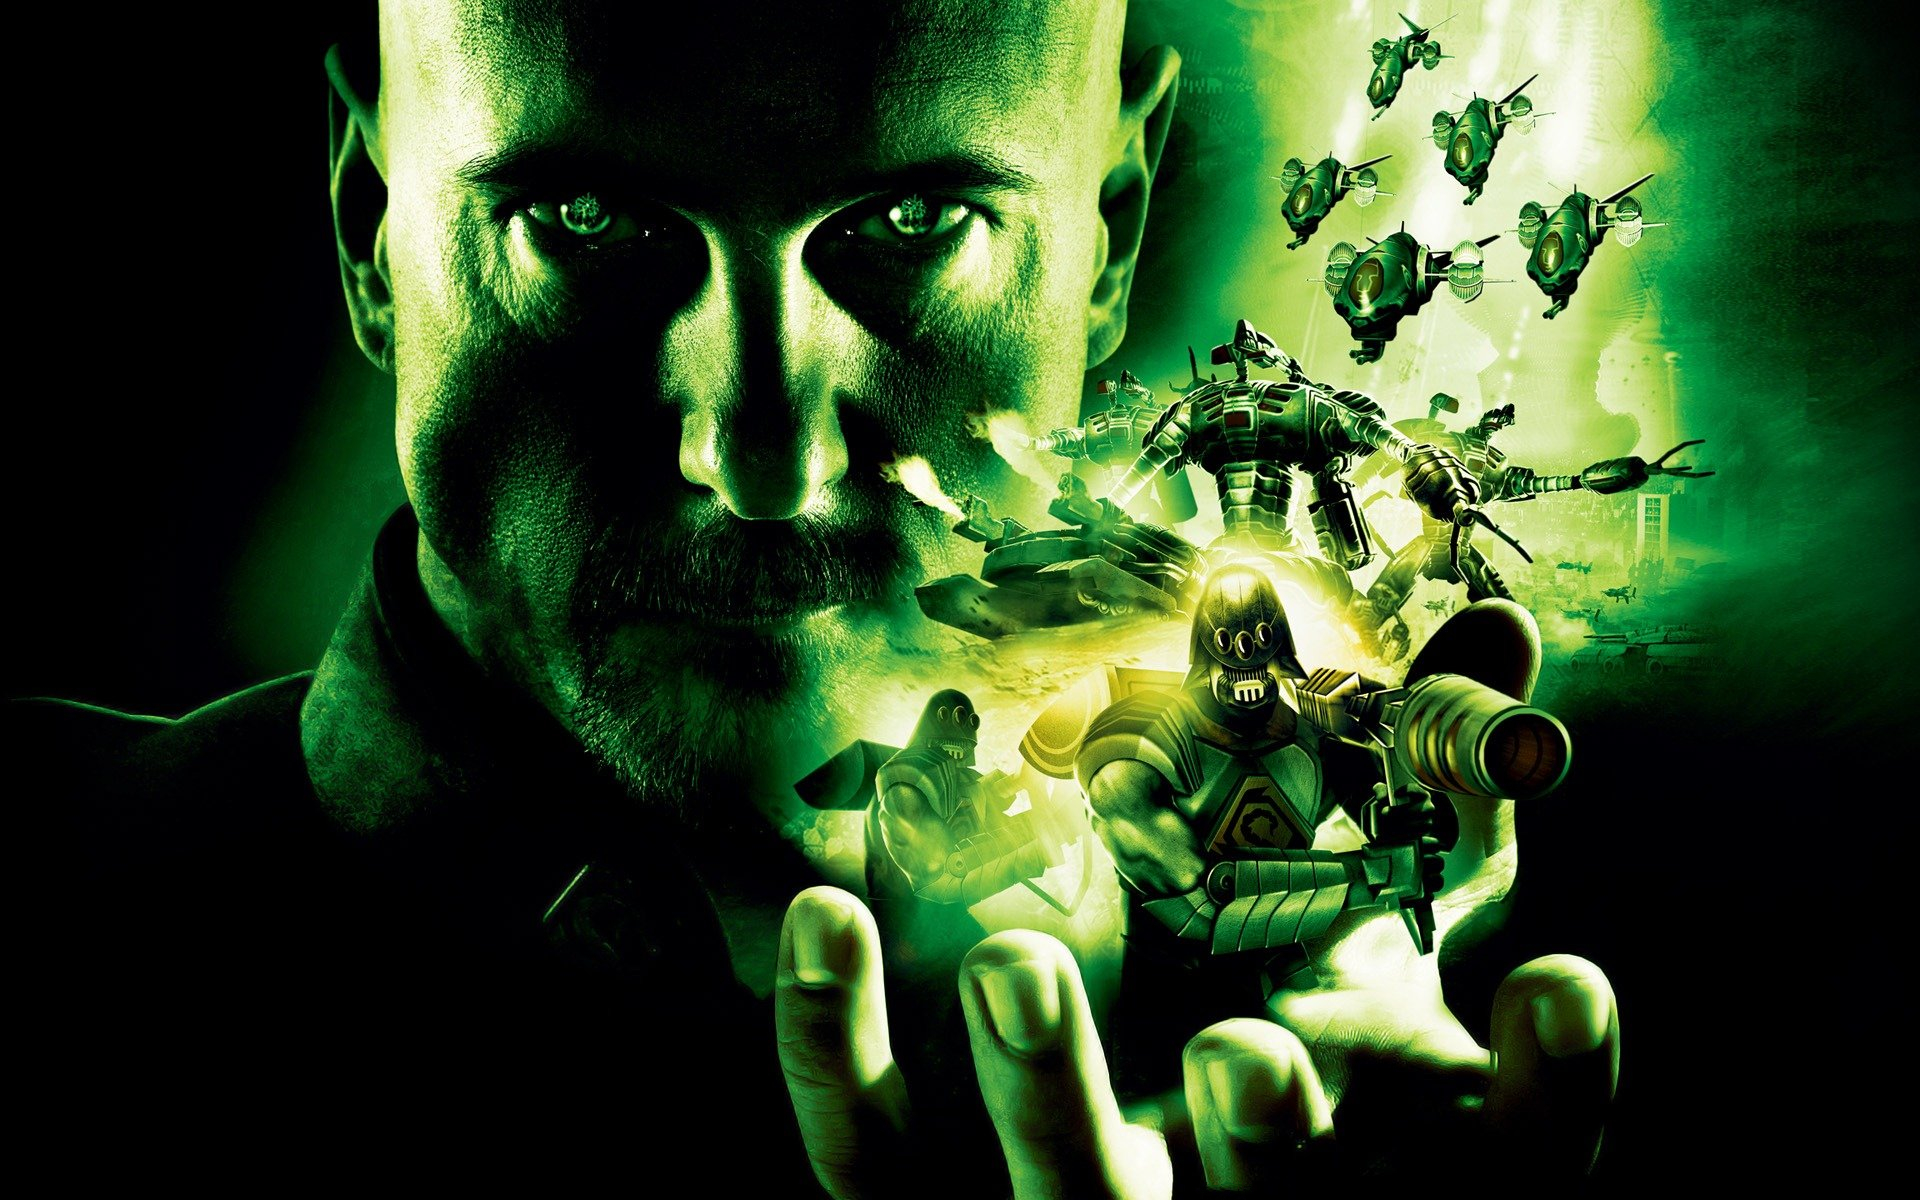 Video Game Command Amp Conquer 3 1920x1200